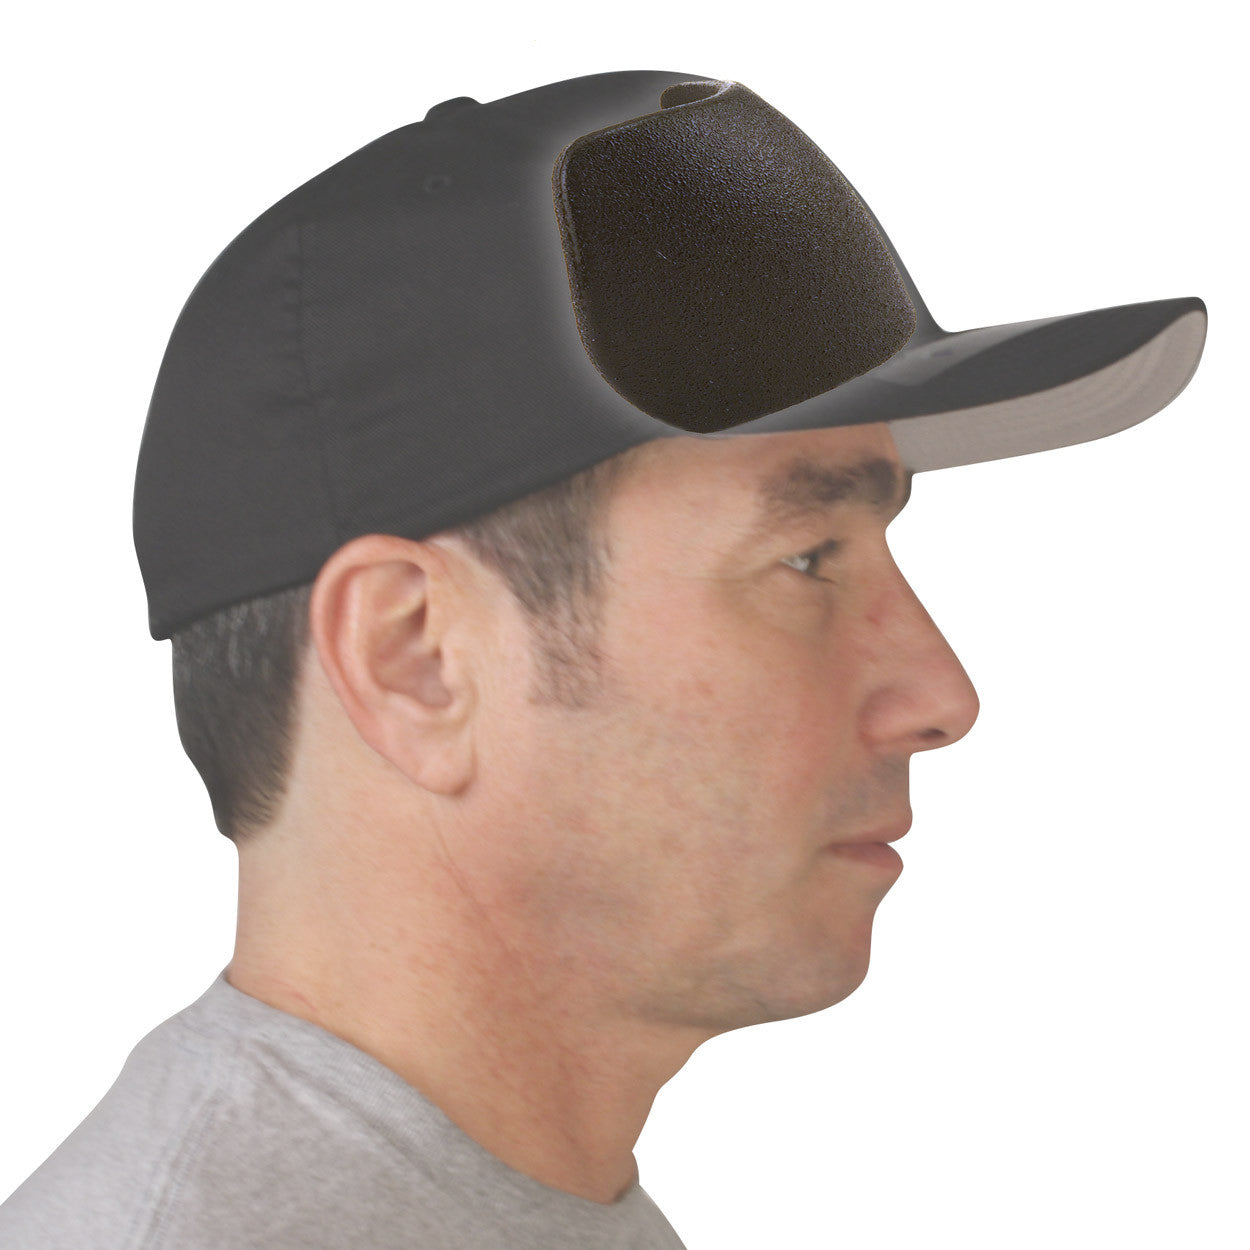 Bulletproof Baseball Cap by BulletSafe – BulletSafe Bulletproof Vests 9d4d66bac269